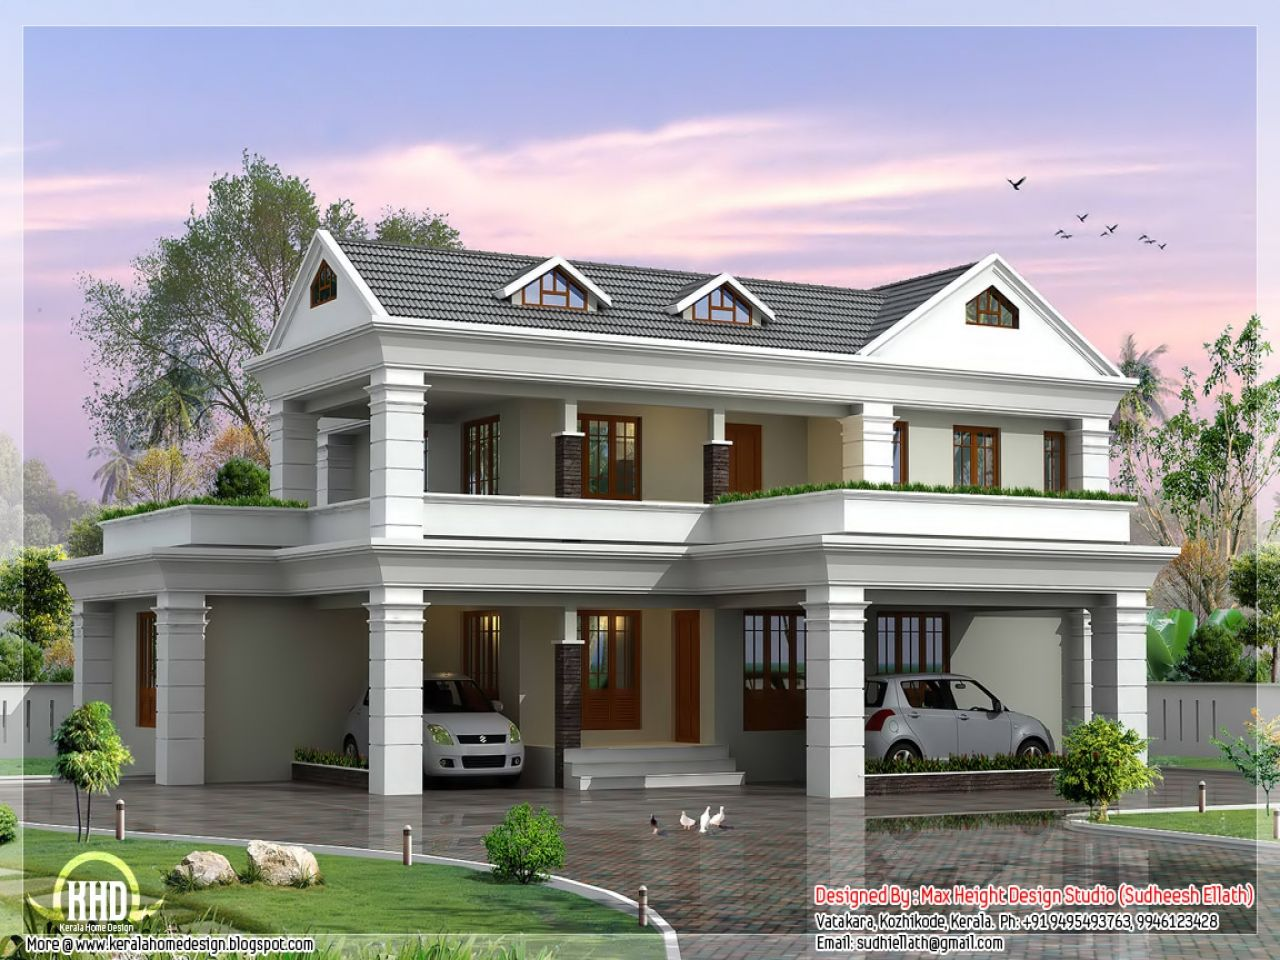 Span new n 2 storey house plans story home designs 115 1 Home design house plans